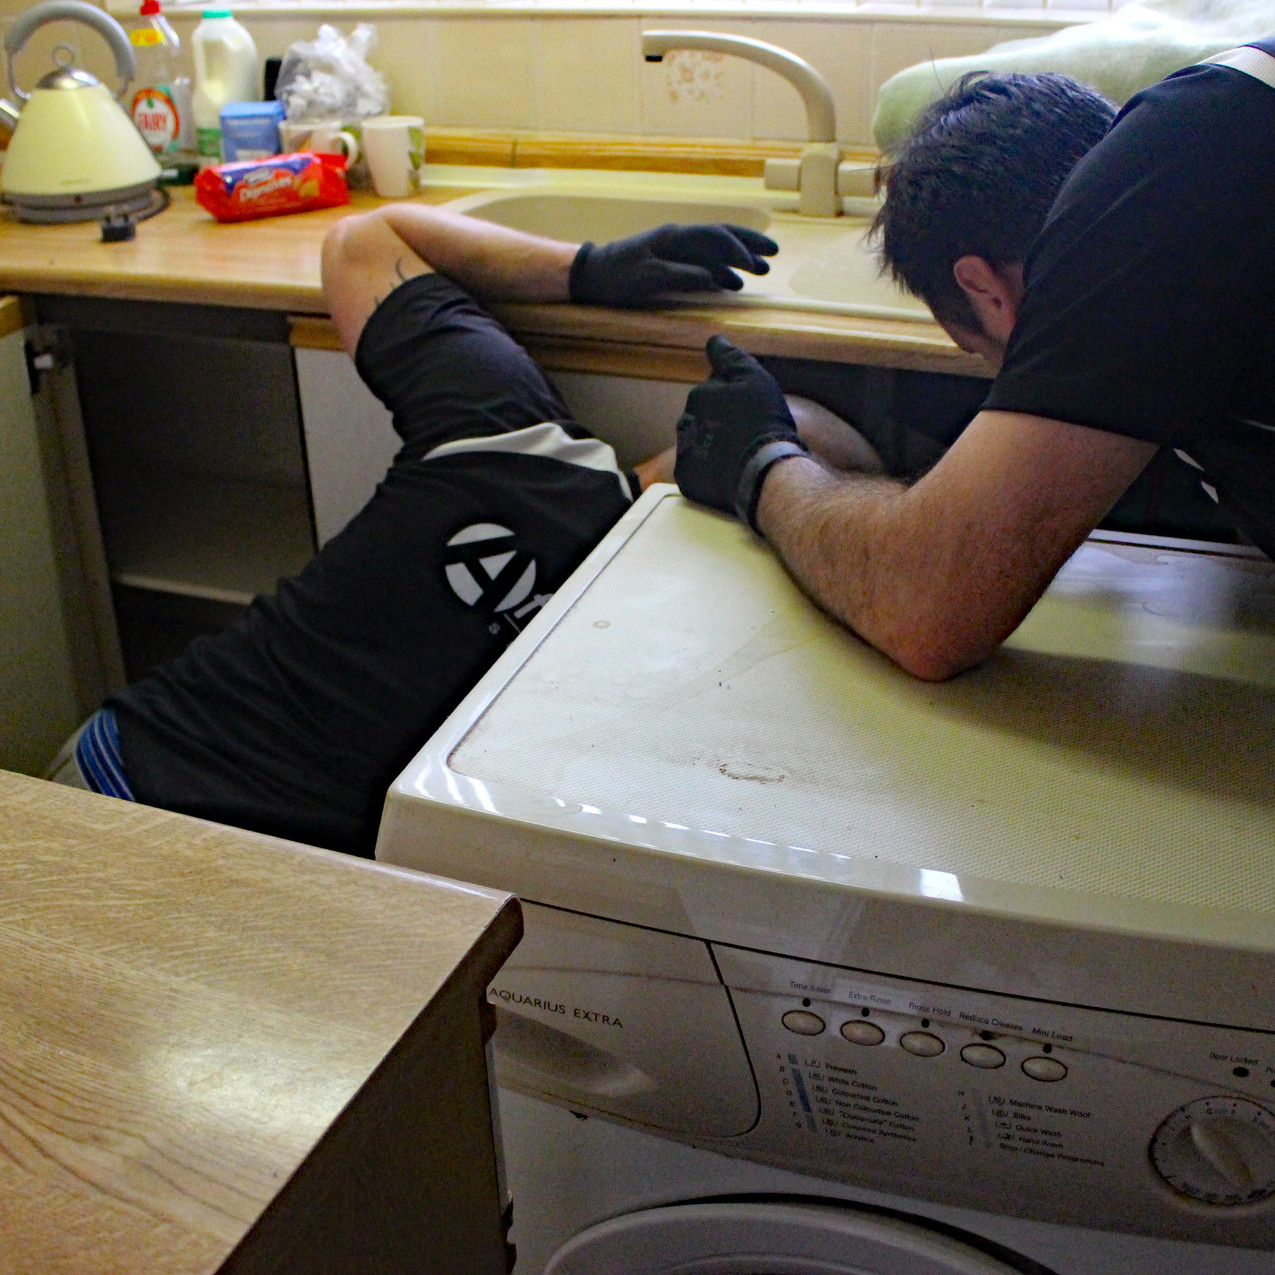 Clearing the White goods